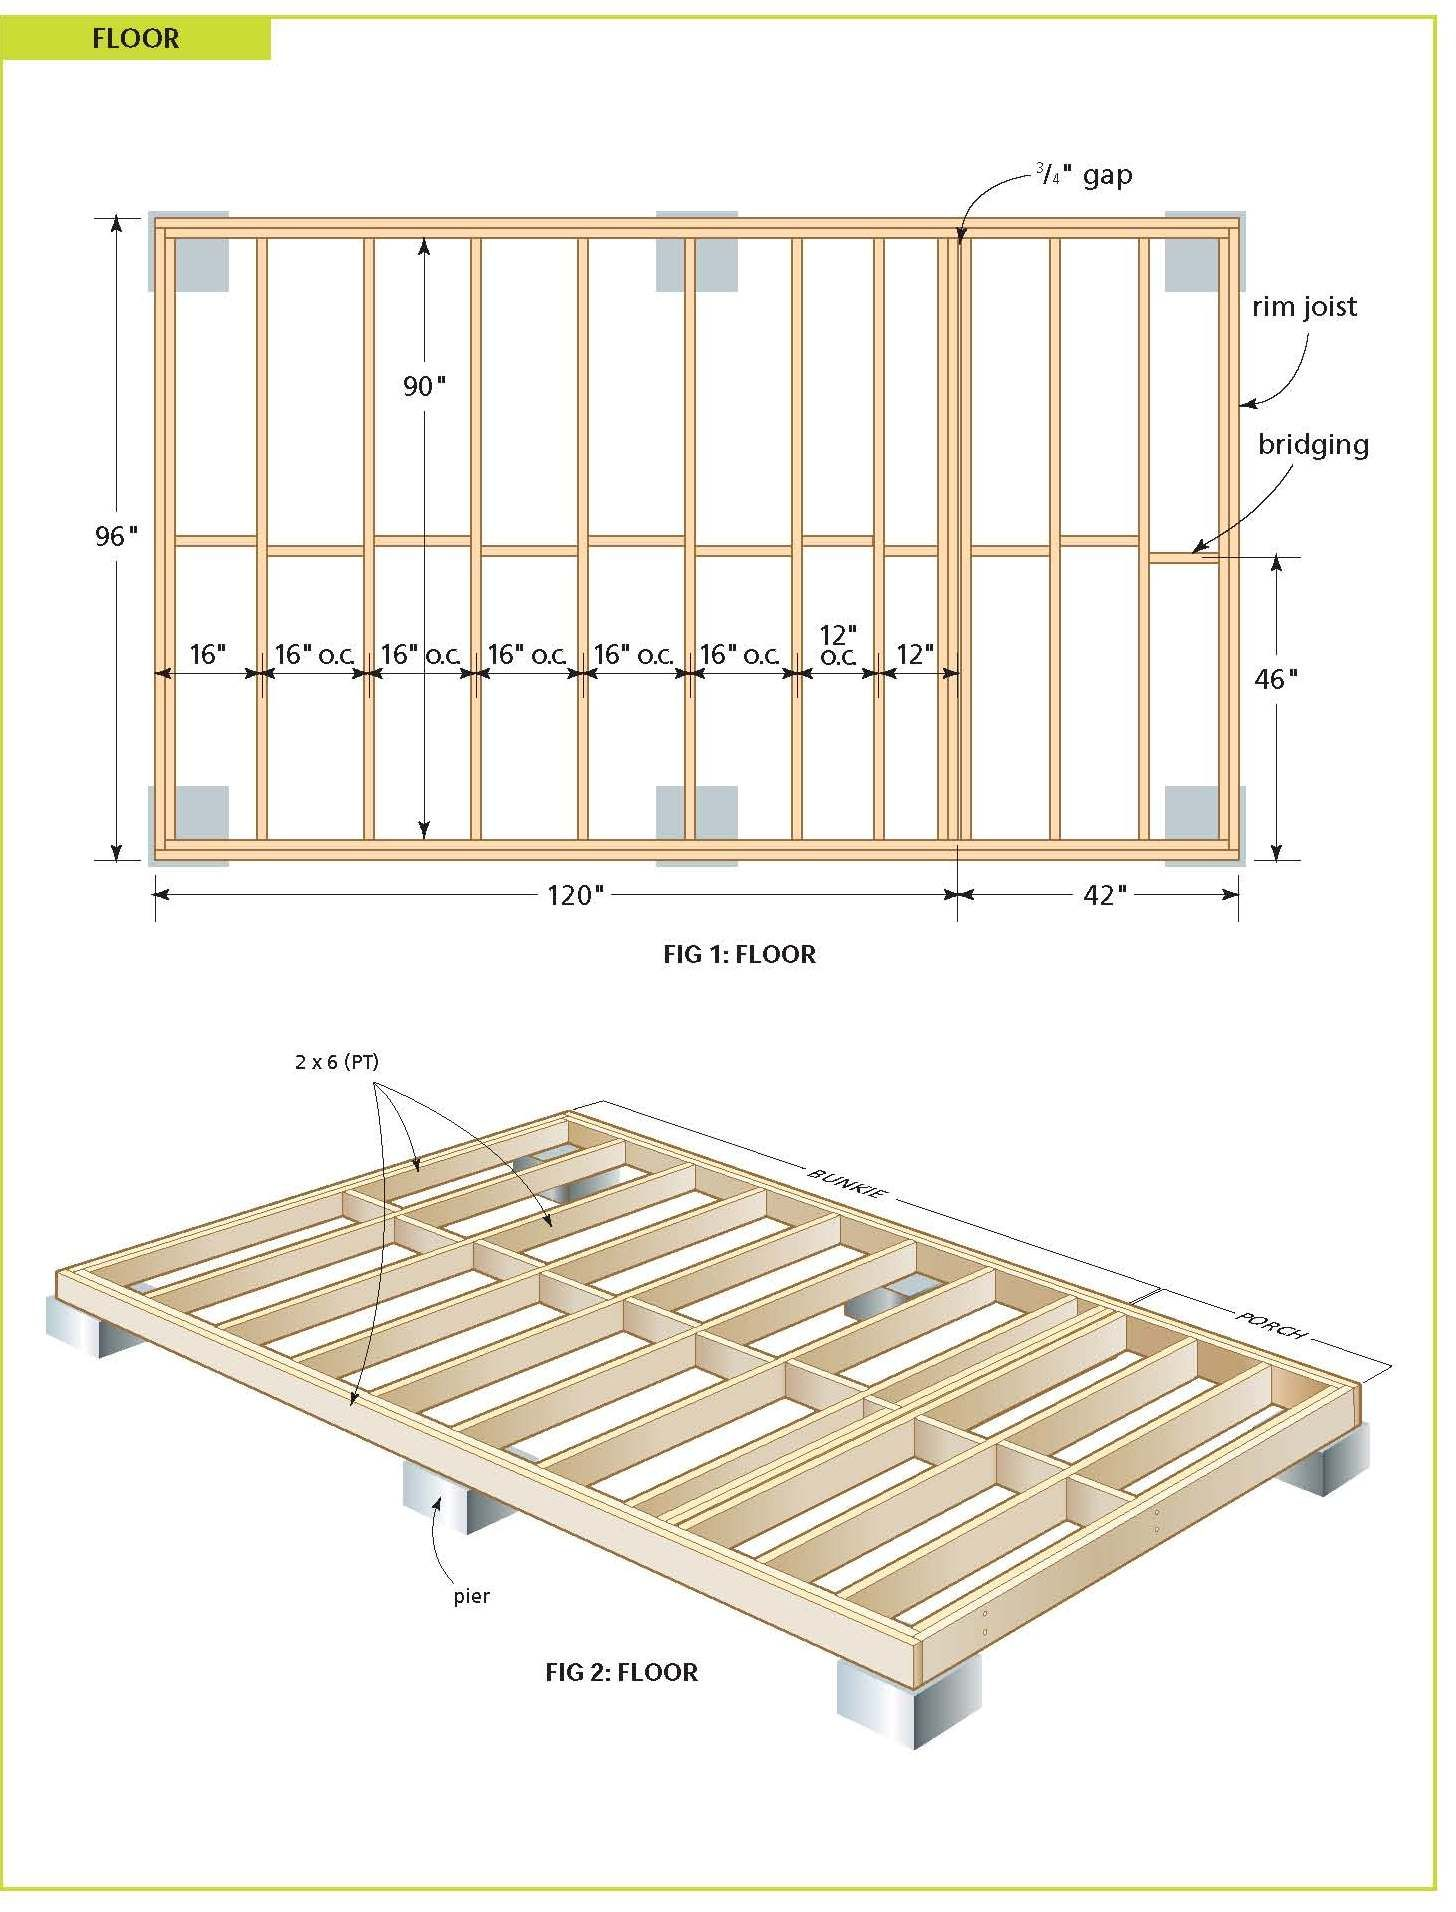 diy shed how to plan and build a shed base shed pinterest diy shed how to plan and build a shed base shed pinterest backyard gardens and yards